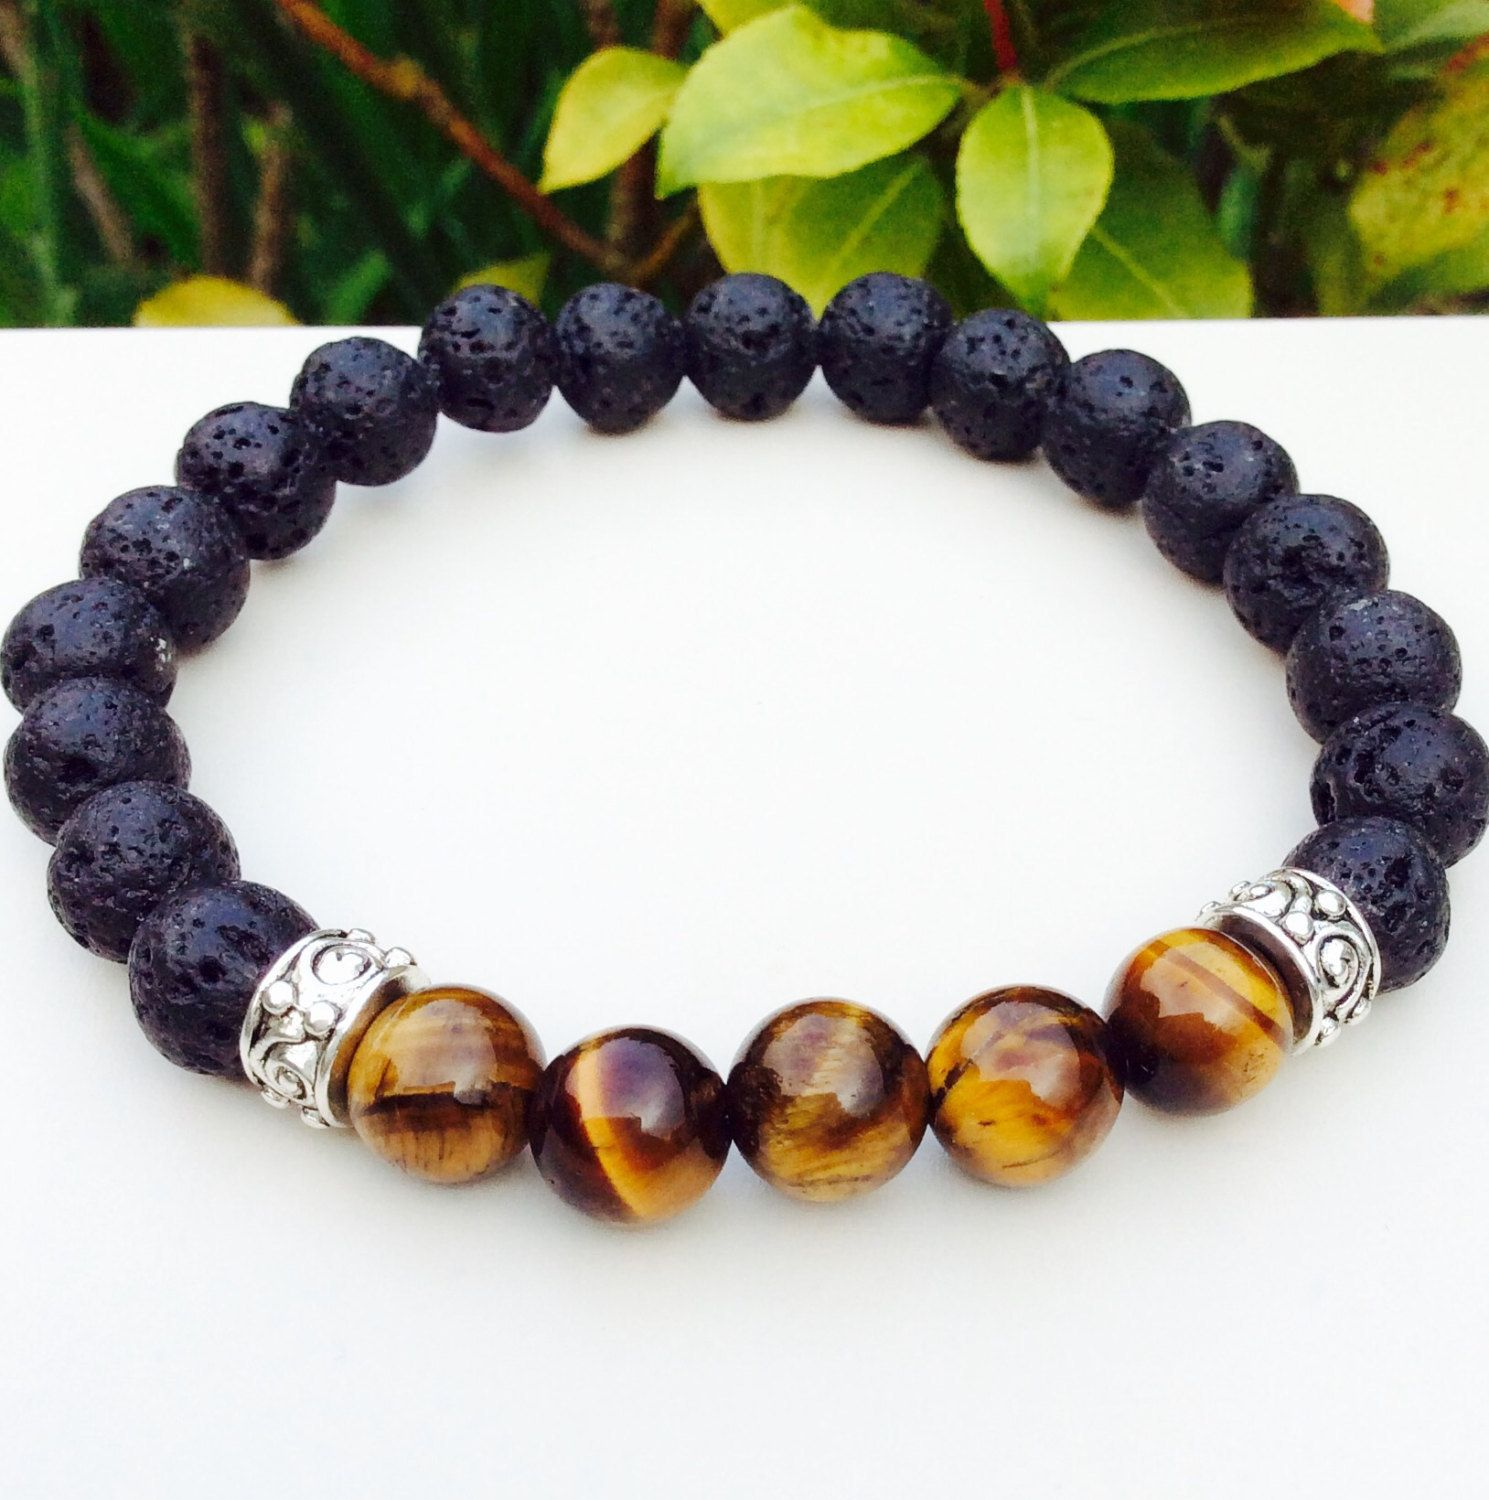 Find Something Different Tigers Eye Gemstone Power Bracelet 30 Beads 6mm